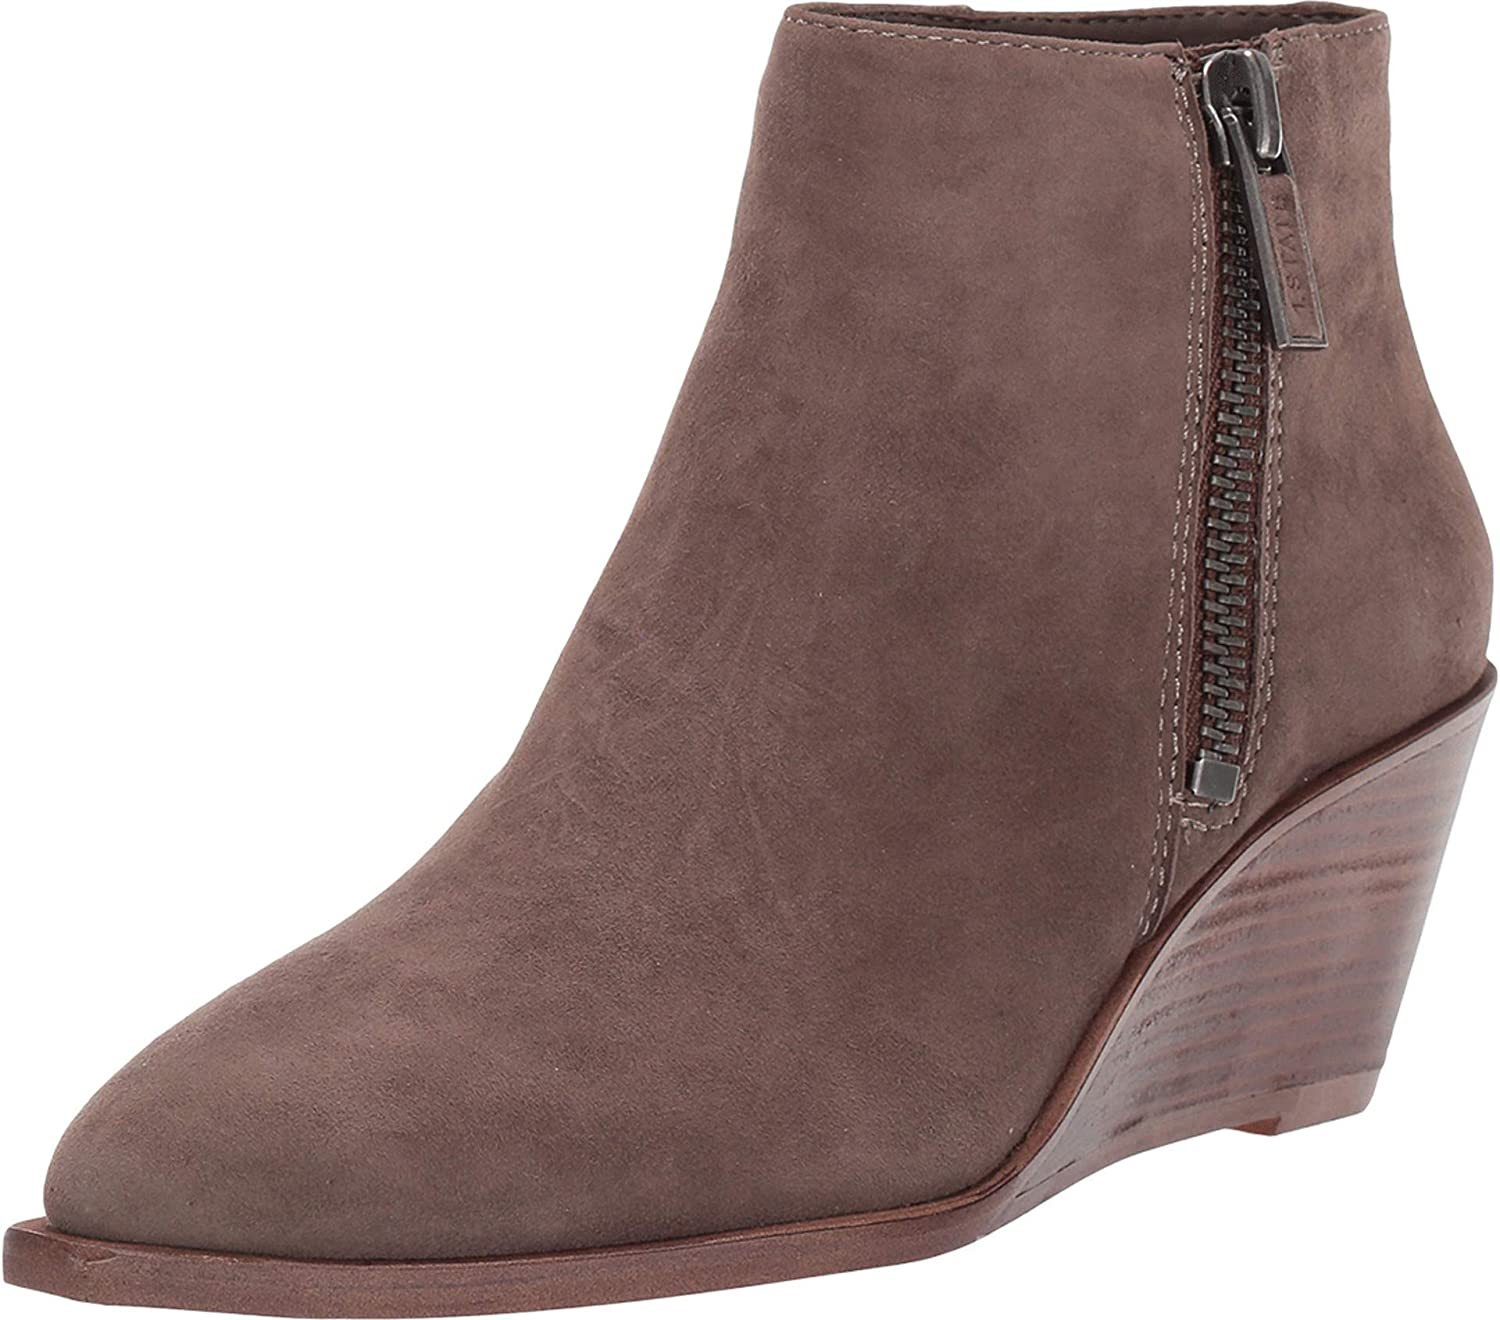 1.STATE Womens Kipp Suede Flocked Wedge Boots